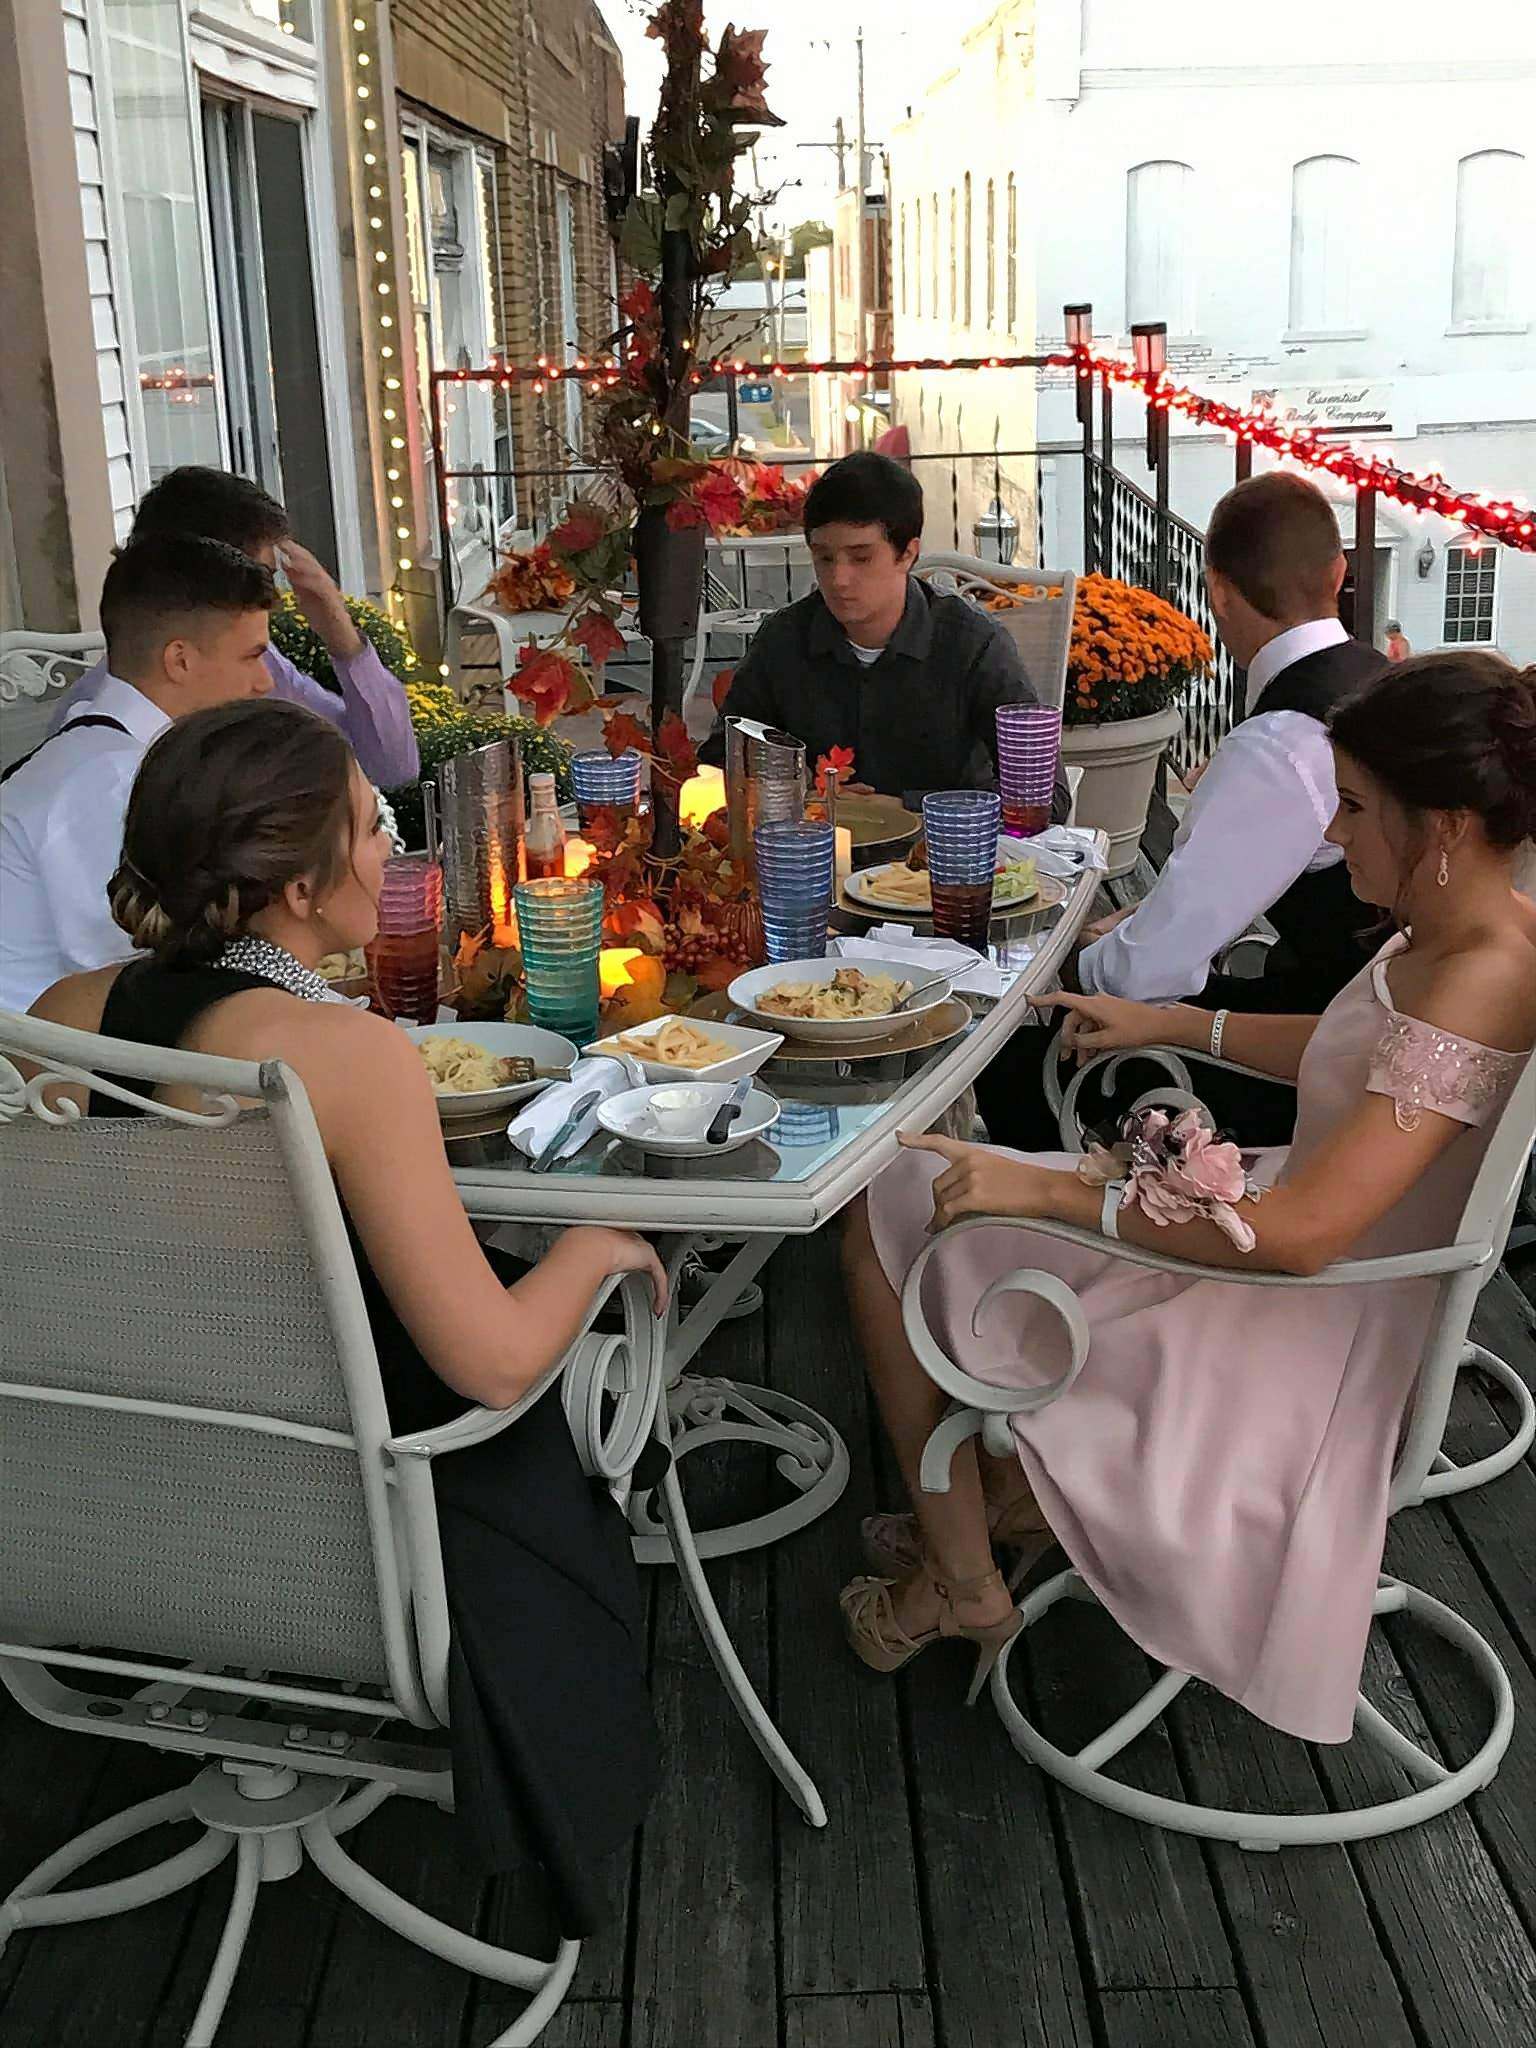 Chase Gray headed the seating with Joey Craig, Samantha Allen, Olivia Bragg, AJ Farmer, and Chance DeVore for a very special homecoming meal served Saturday evening by Seasonings Bistro on the terrace of Edwards Antiques in Benton. For the complete story, see page 3.